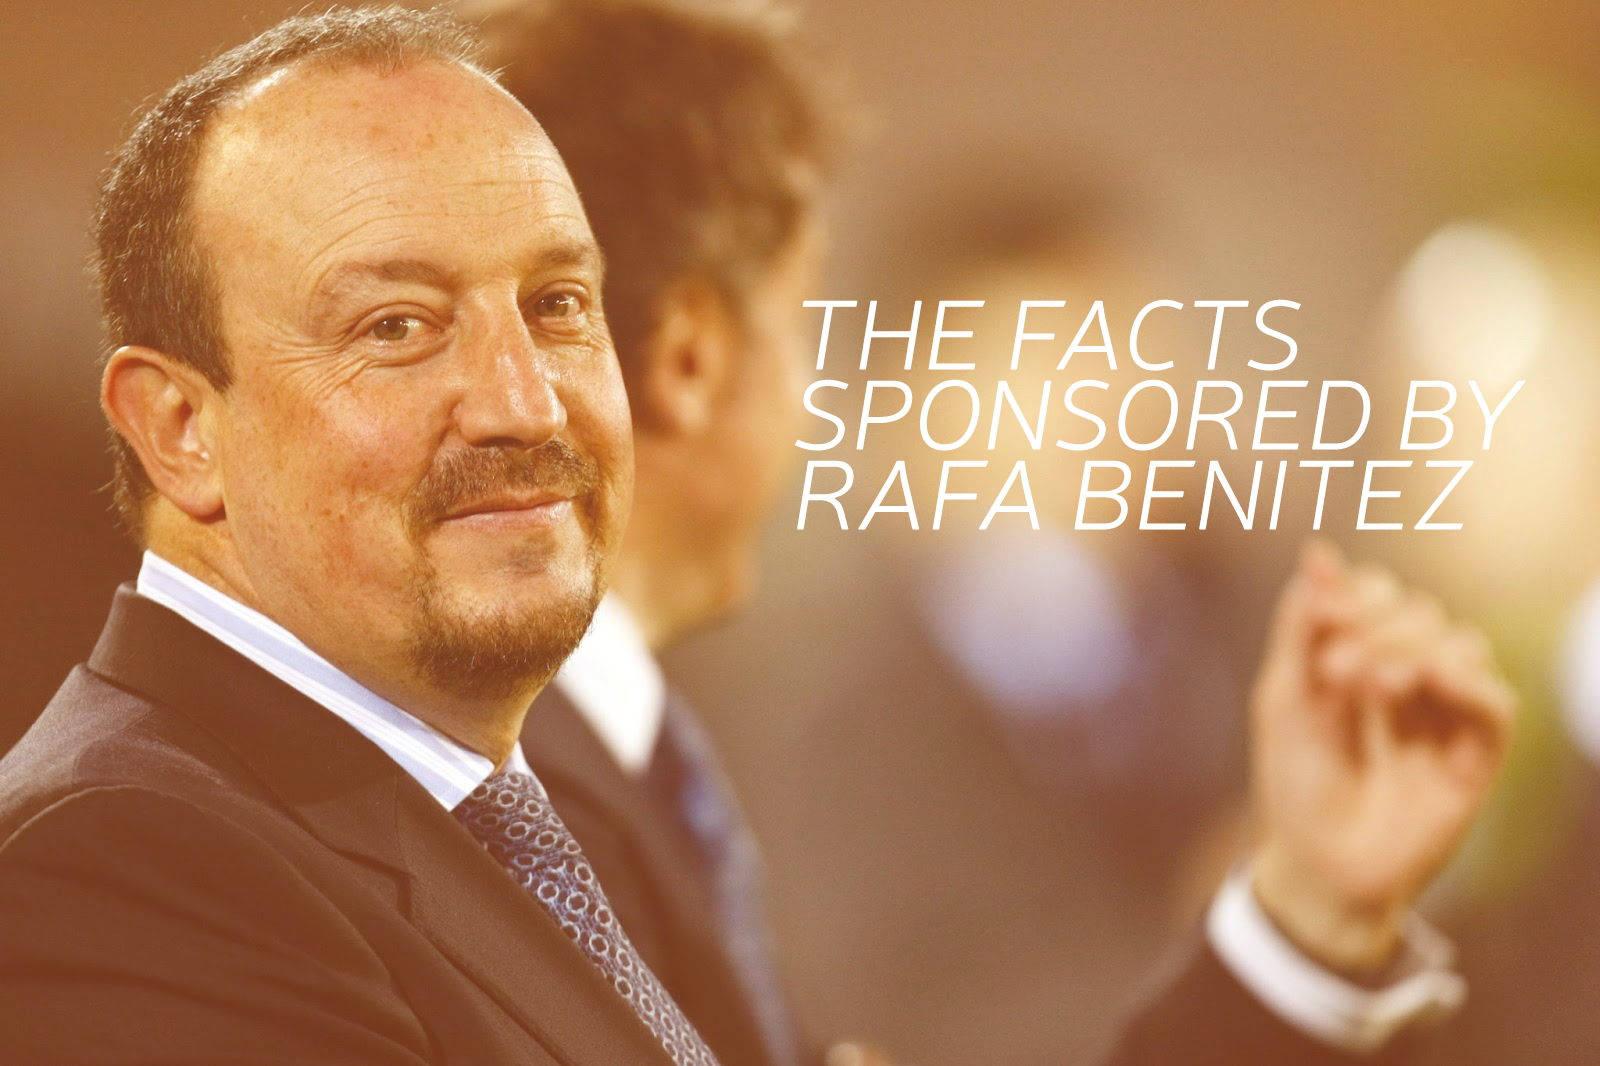 The Facts sponsored by Rafa Benitez